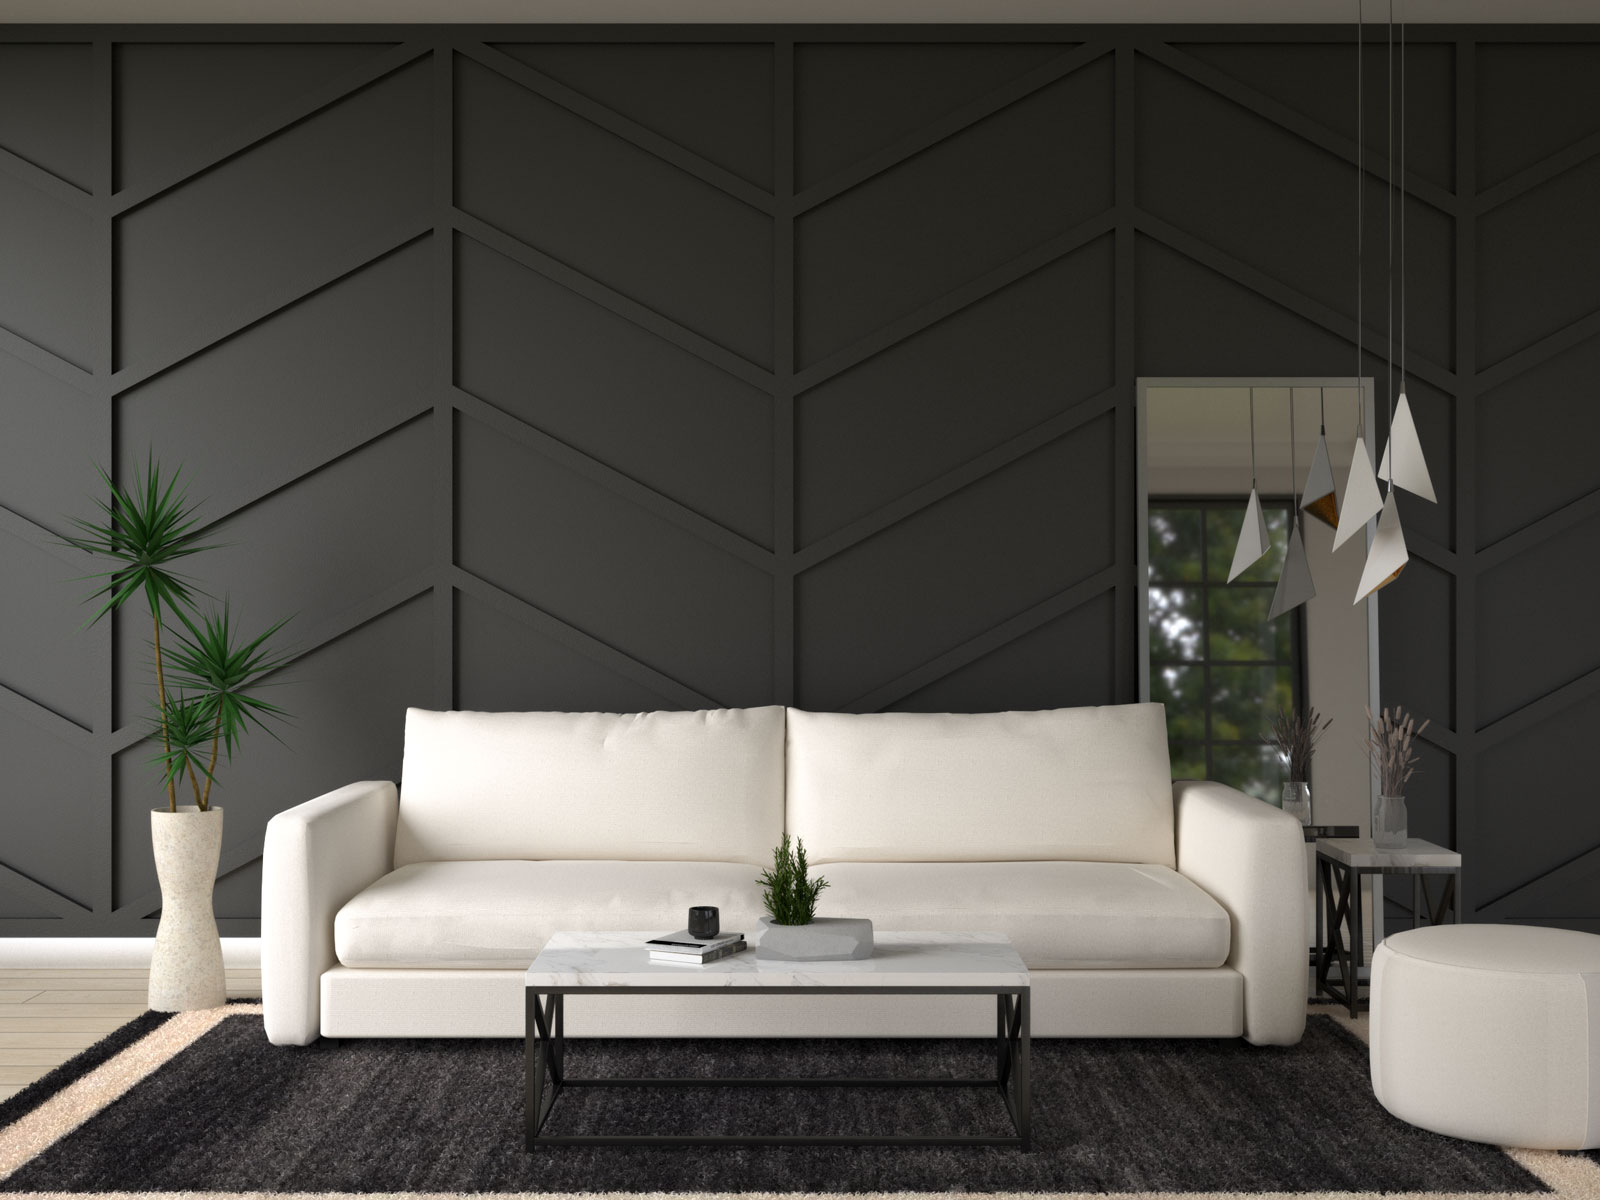 Cream furniture with black accent wall